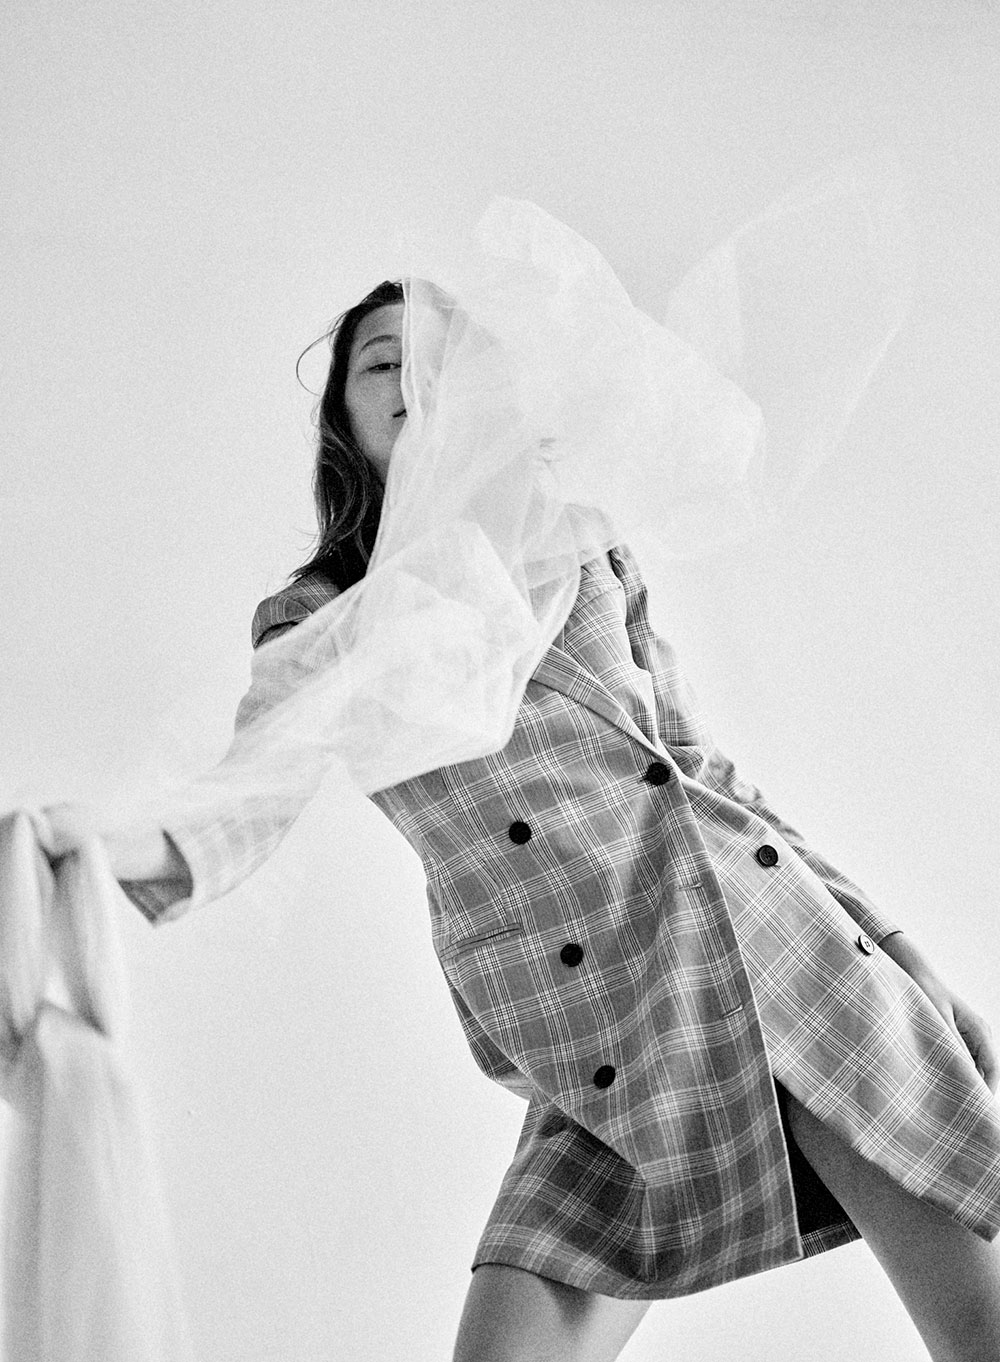 Model Dasha Maletina by Keiichiro Nakajima for MONROWE Magazine